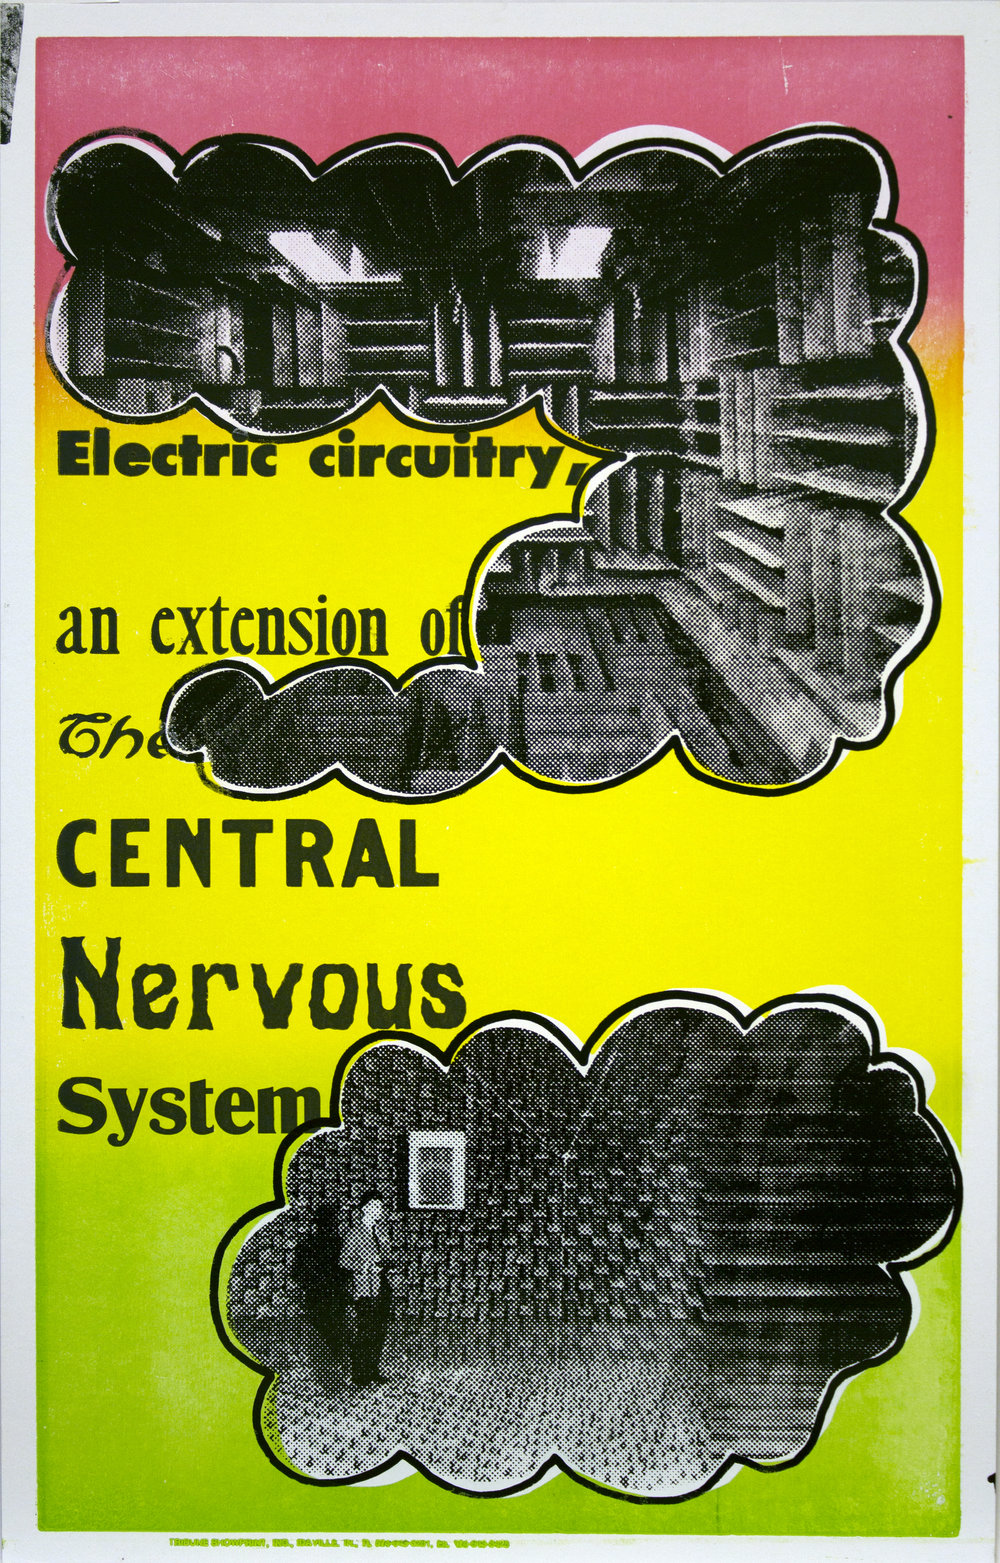 Christopher Michlig and Jan Tumlir,  Adventures in Sensory Deprivation 2: Audio (Electric circuitry, an extension of the CENTRAL Nervous System) , 2017. Silkscreen and letterpress on poster board, 14 x 22 inches